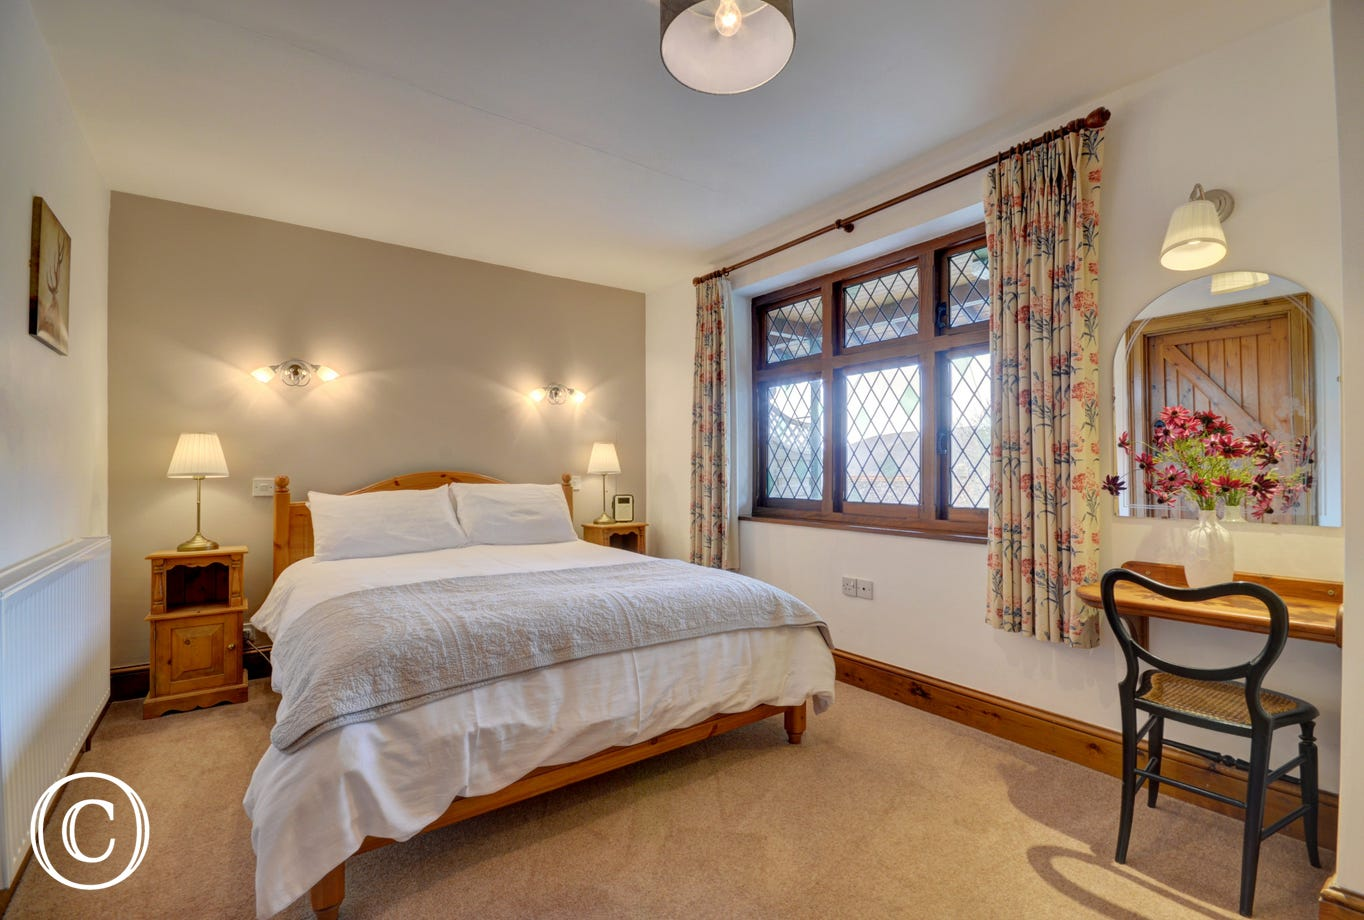 An attractive bedroom is at the front of the cottage with a Kingsize bed and a spacious ensuite bathroom with bath and walk-in shower